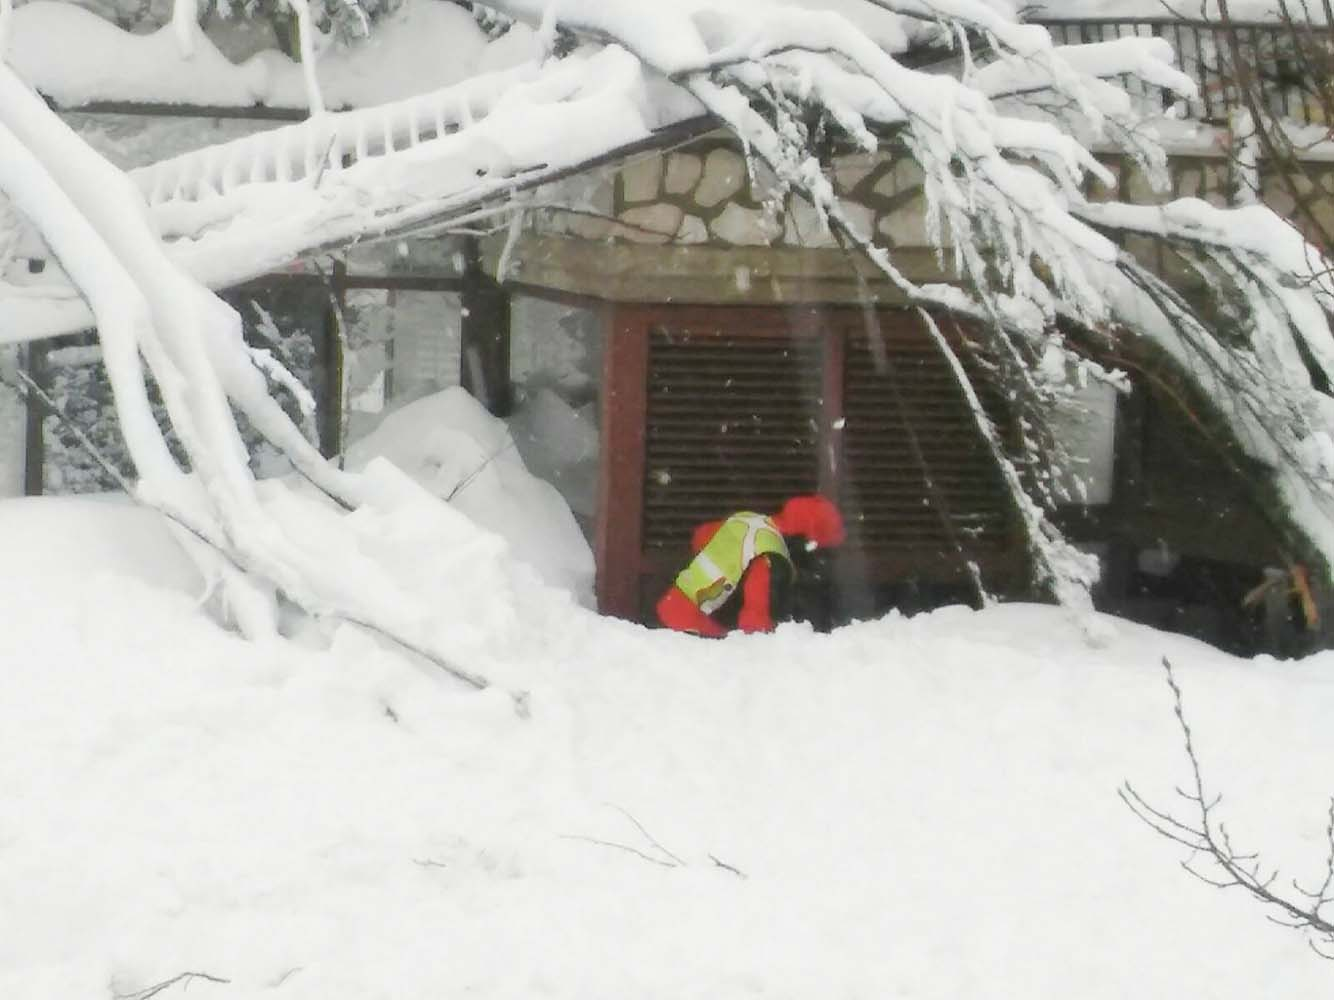 A member of Lazio's Alpine and Speleological Rescue Team is seen in front of the Hotel Rigopiano in Farindola, central Italy, hit by an avalanche, in this January 19, 2017 handout picture provided by Lazio's Alpine and Speleological Rescue Team. Soccorso Alpino Speleologico Lazio/Handout via REUTERS ATTENTION EDITORS - THIS IMAGE WAS PROVIDED BY A THIRD PARTY. EDITORIAL USE ONLY. NO RESALES. NO ARCHIVE.